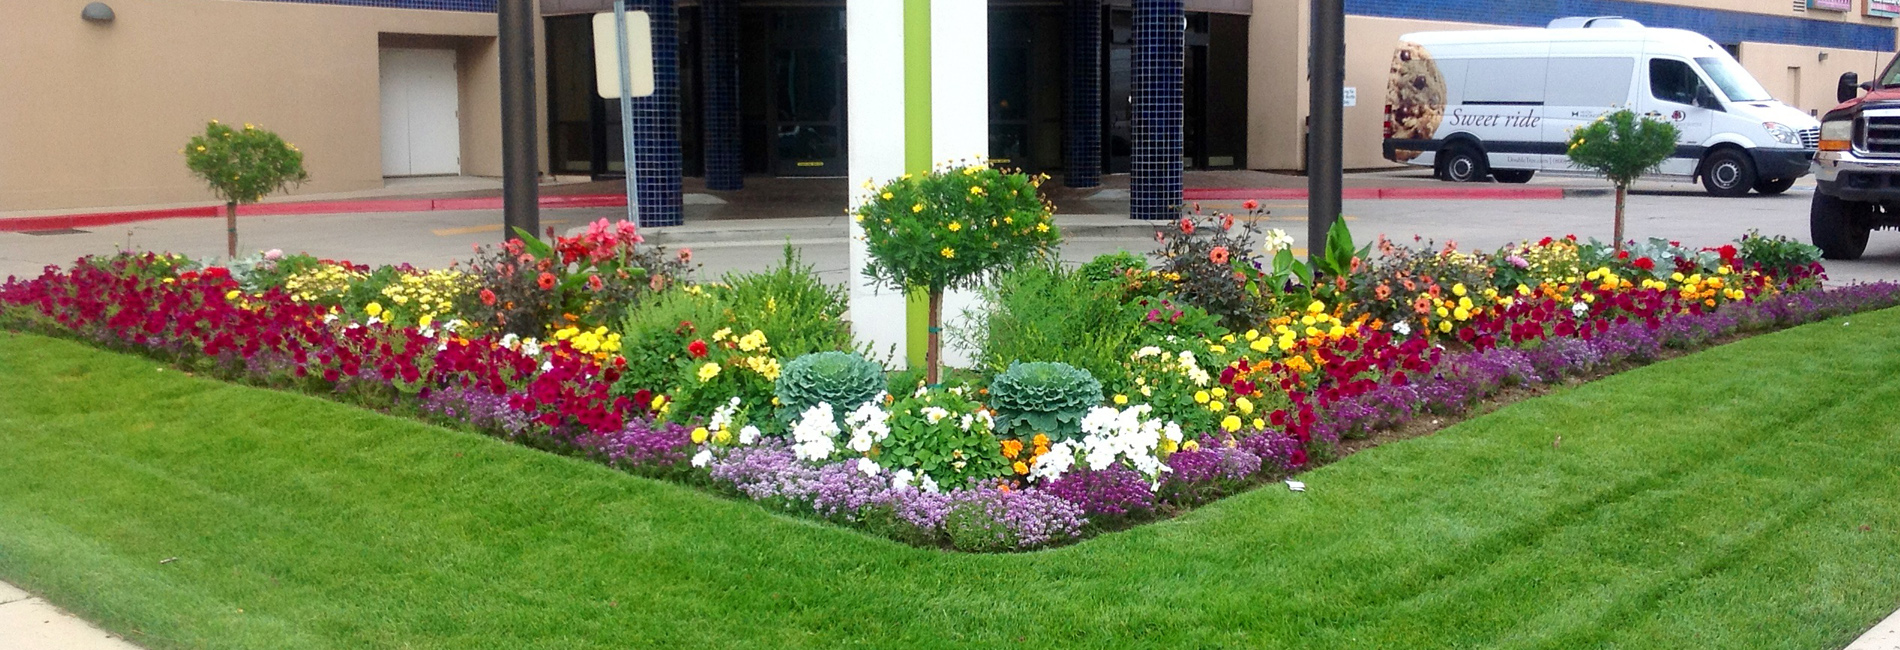 Commercial Landscaping ServicesProfessional | Reliable | Experienced